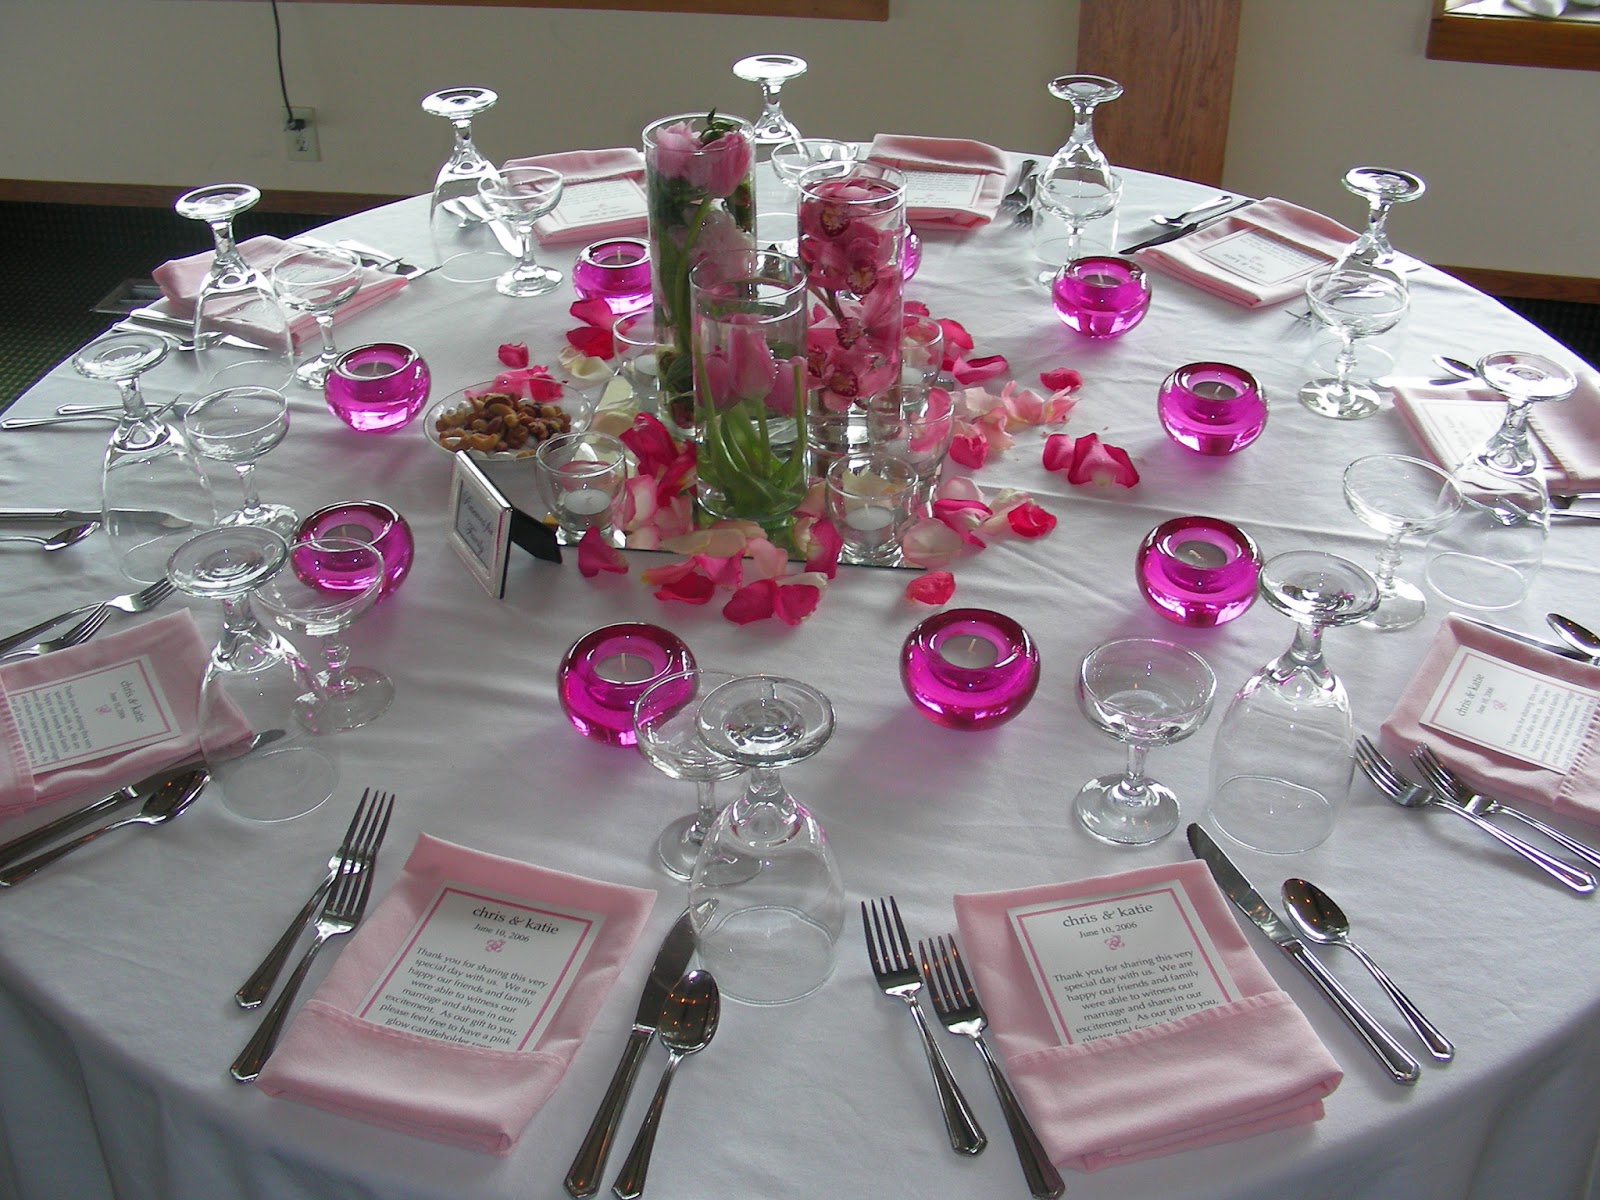 Decoration Table Mariage Decoration Mariage Table Le Mariage